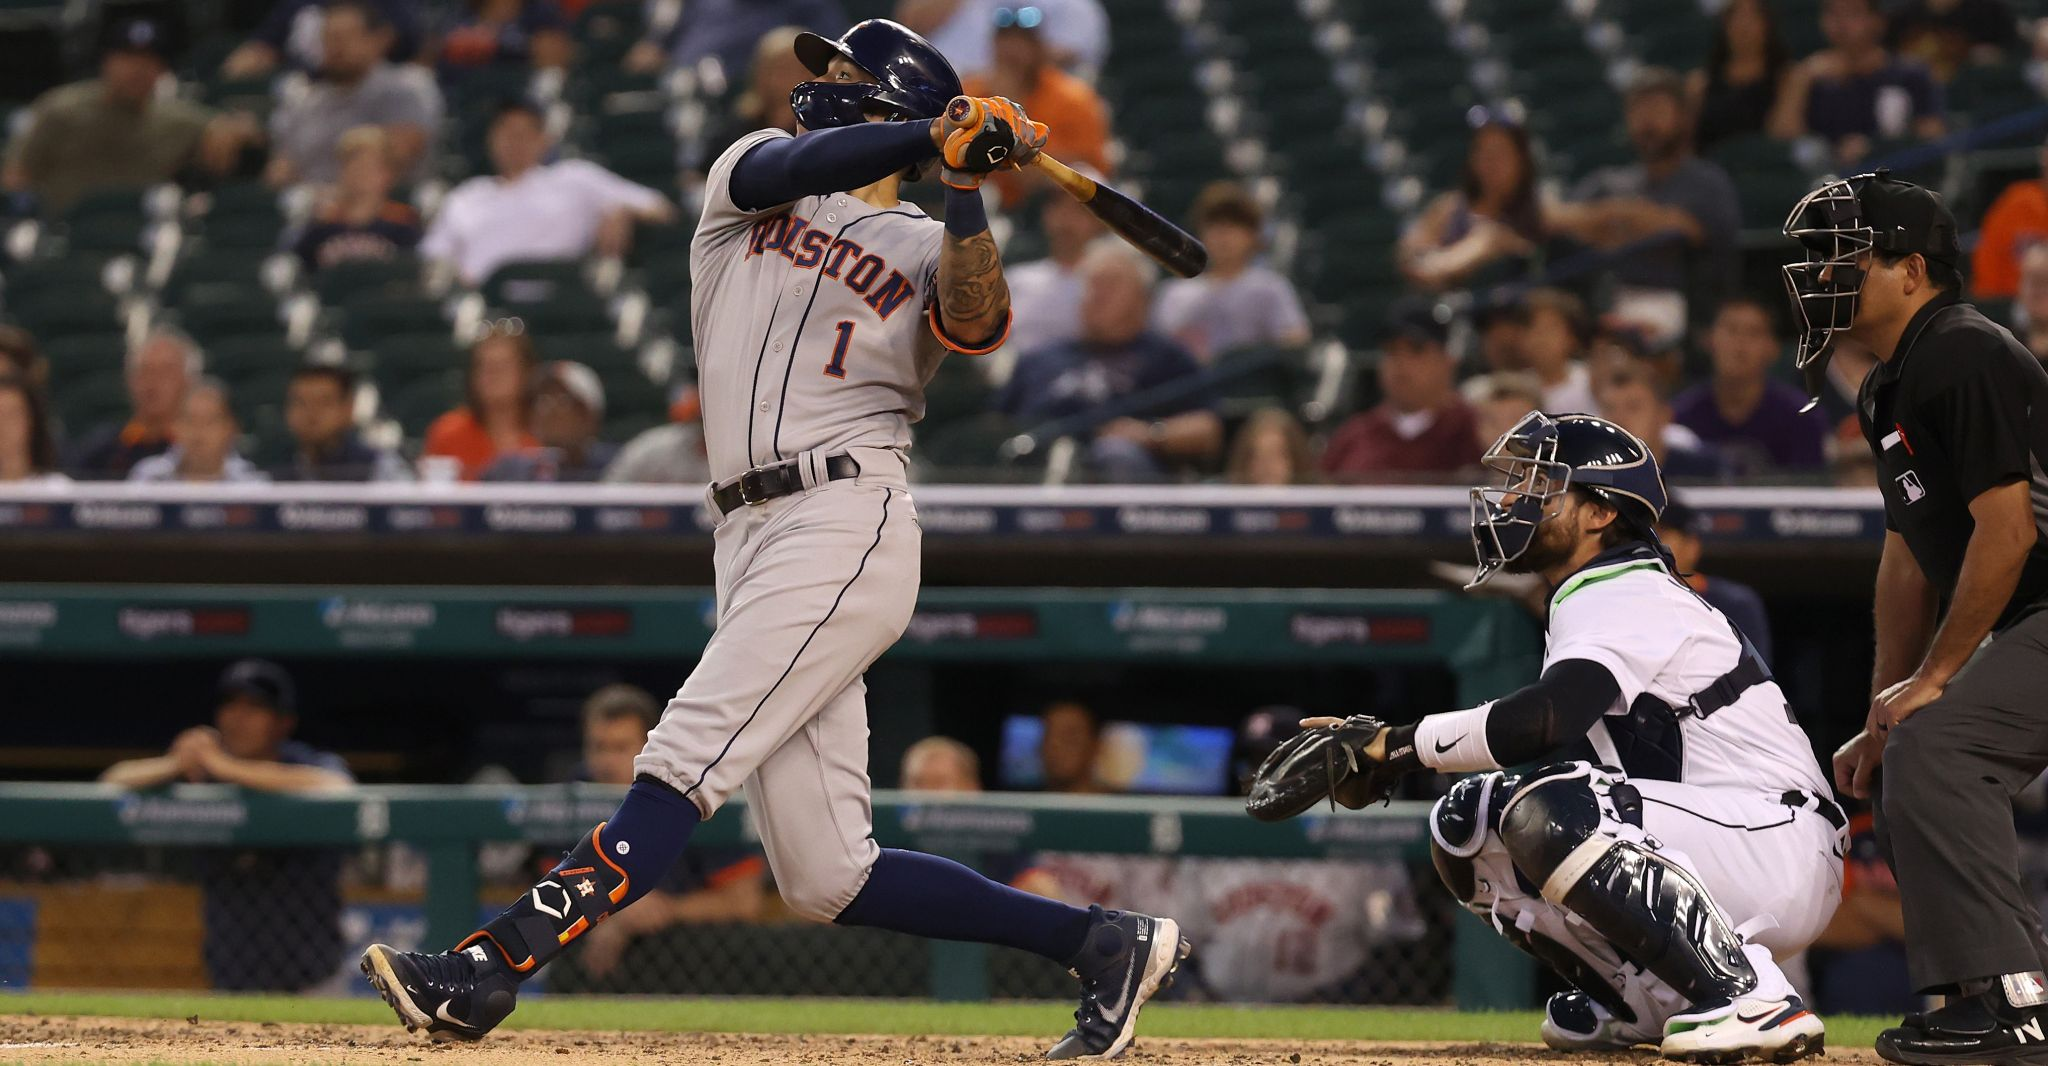 Astros insider: Locked in at the plate